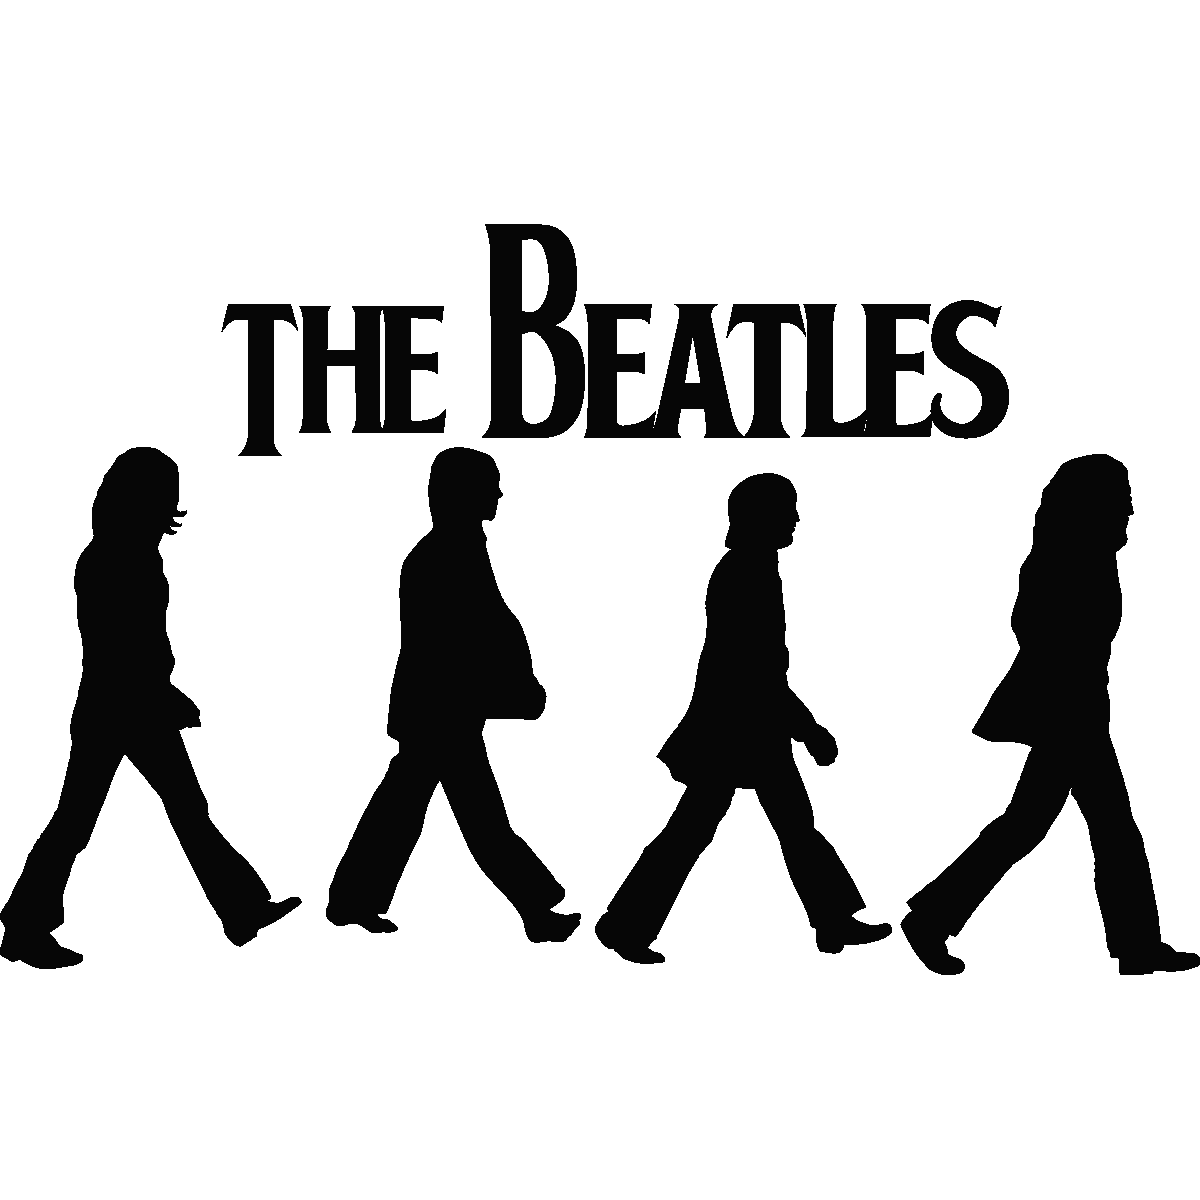 Road svg silhouette. Images for beatles abbey svg royalty free library